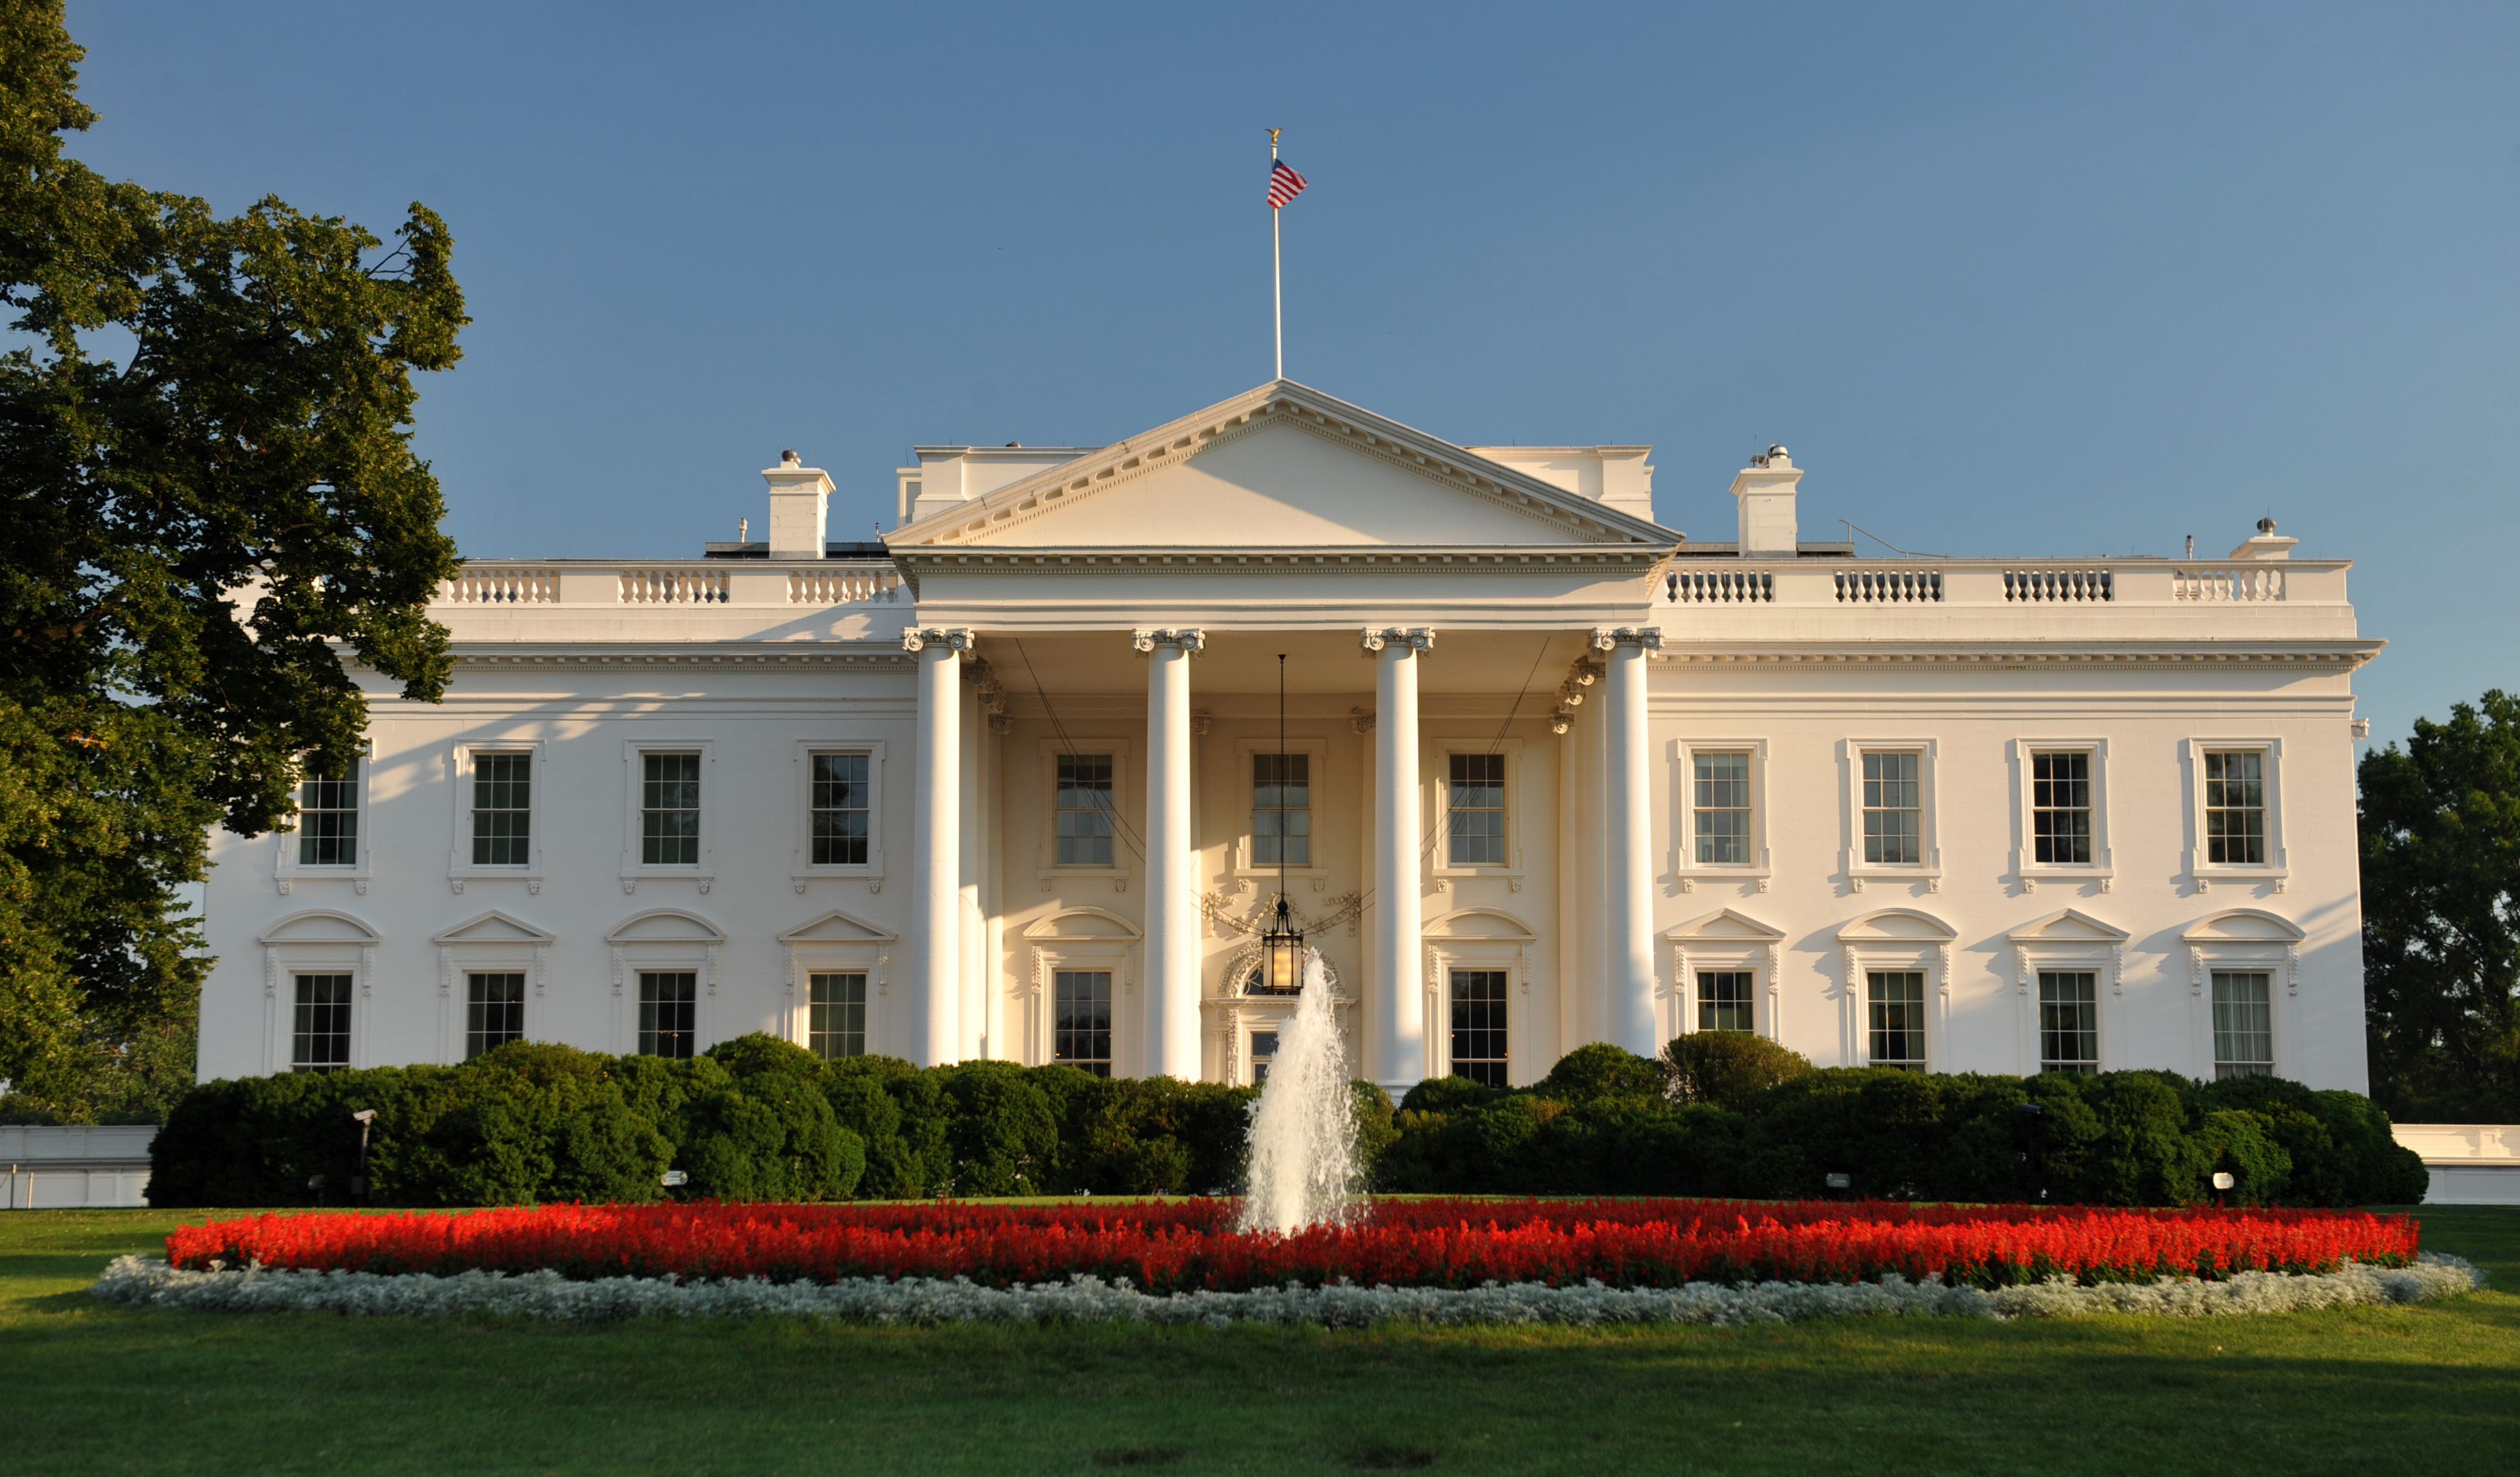 House Exterior: State Rooms Of The White House